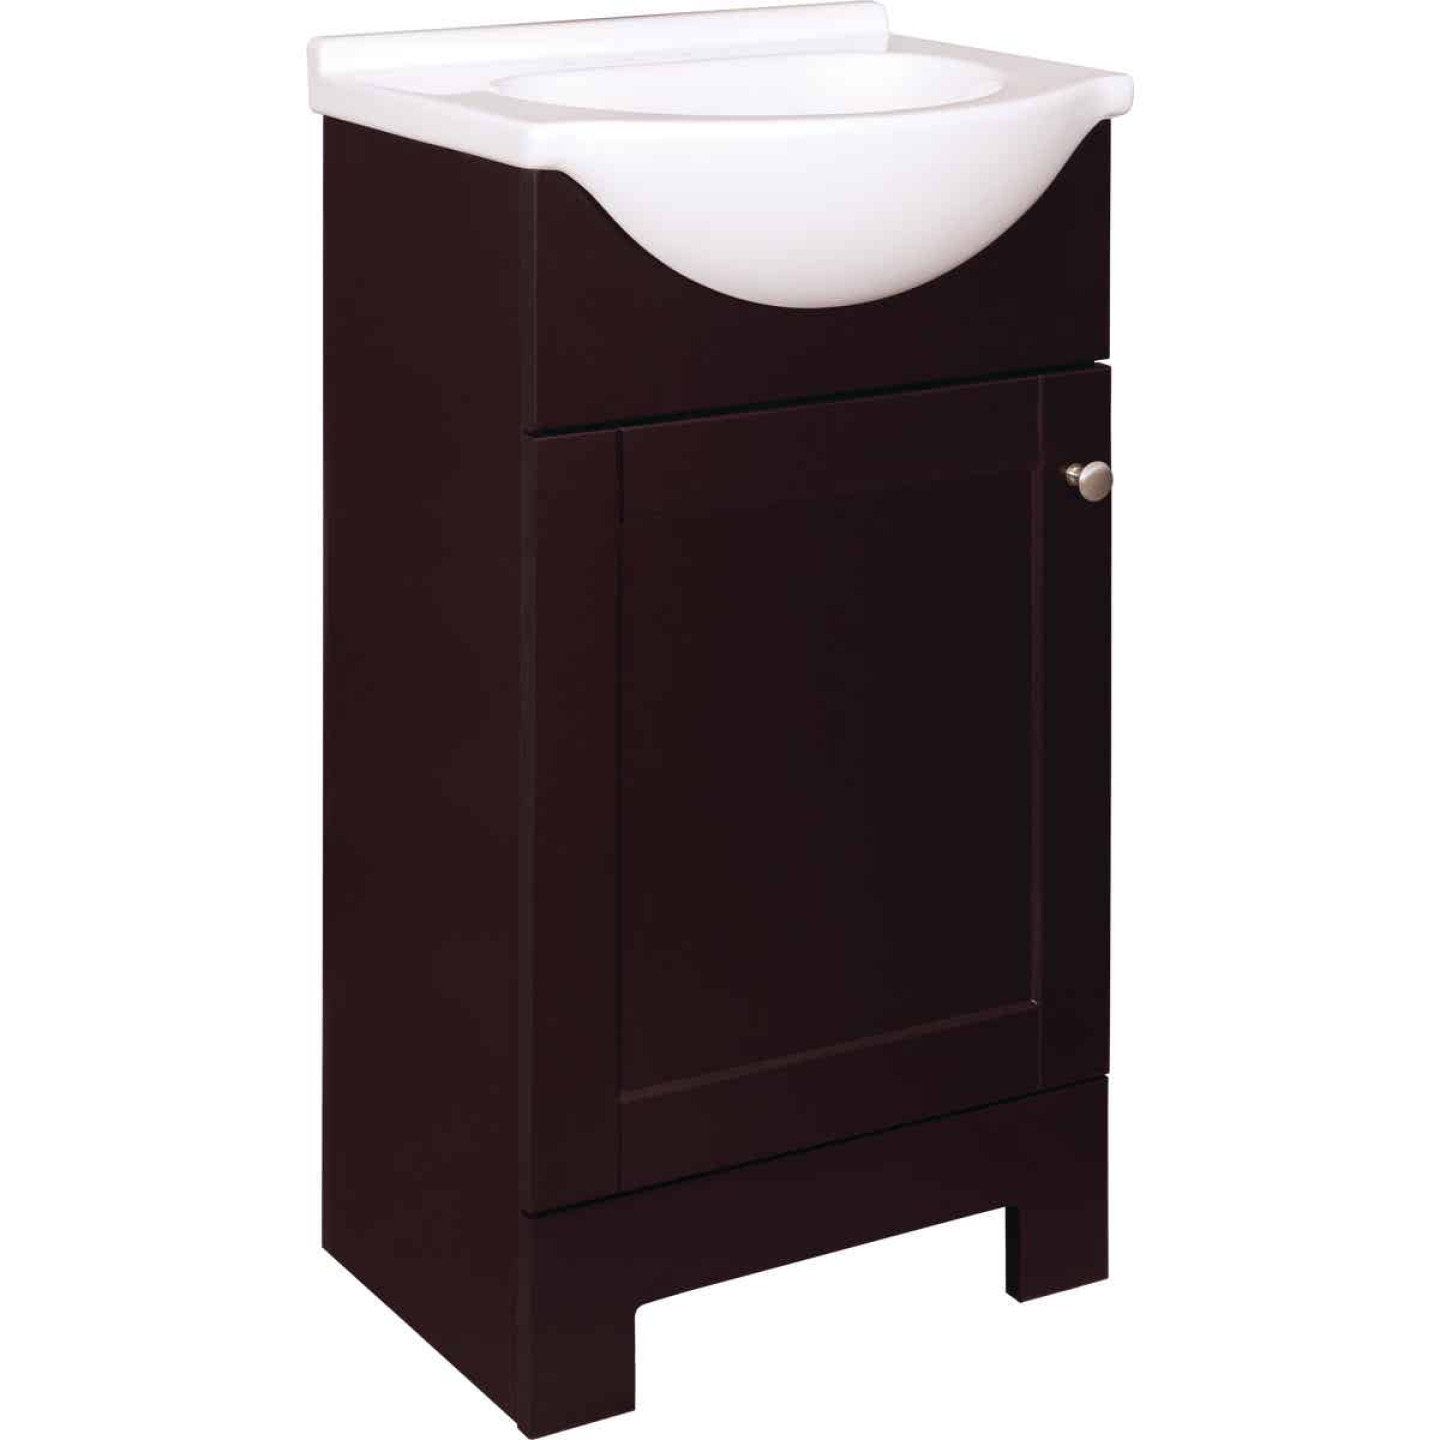 Continental Cabinets European Espresso 18 In. W x 33-1/2 In. H x 12-1/2 In. D Vanity with White Cultured Marble Top Image 1